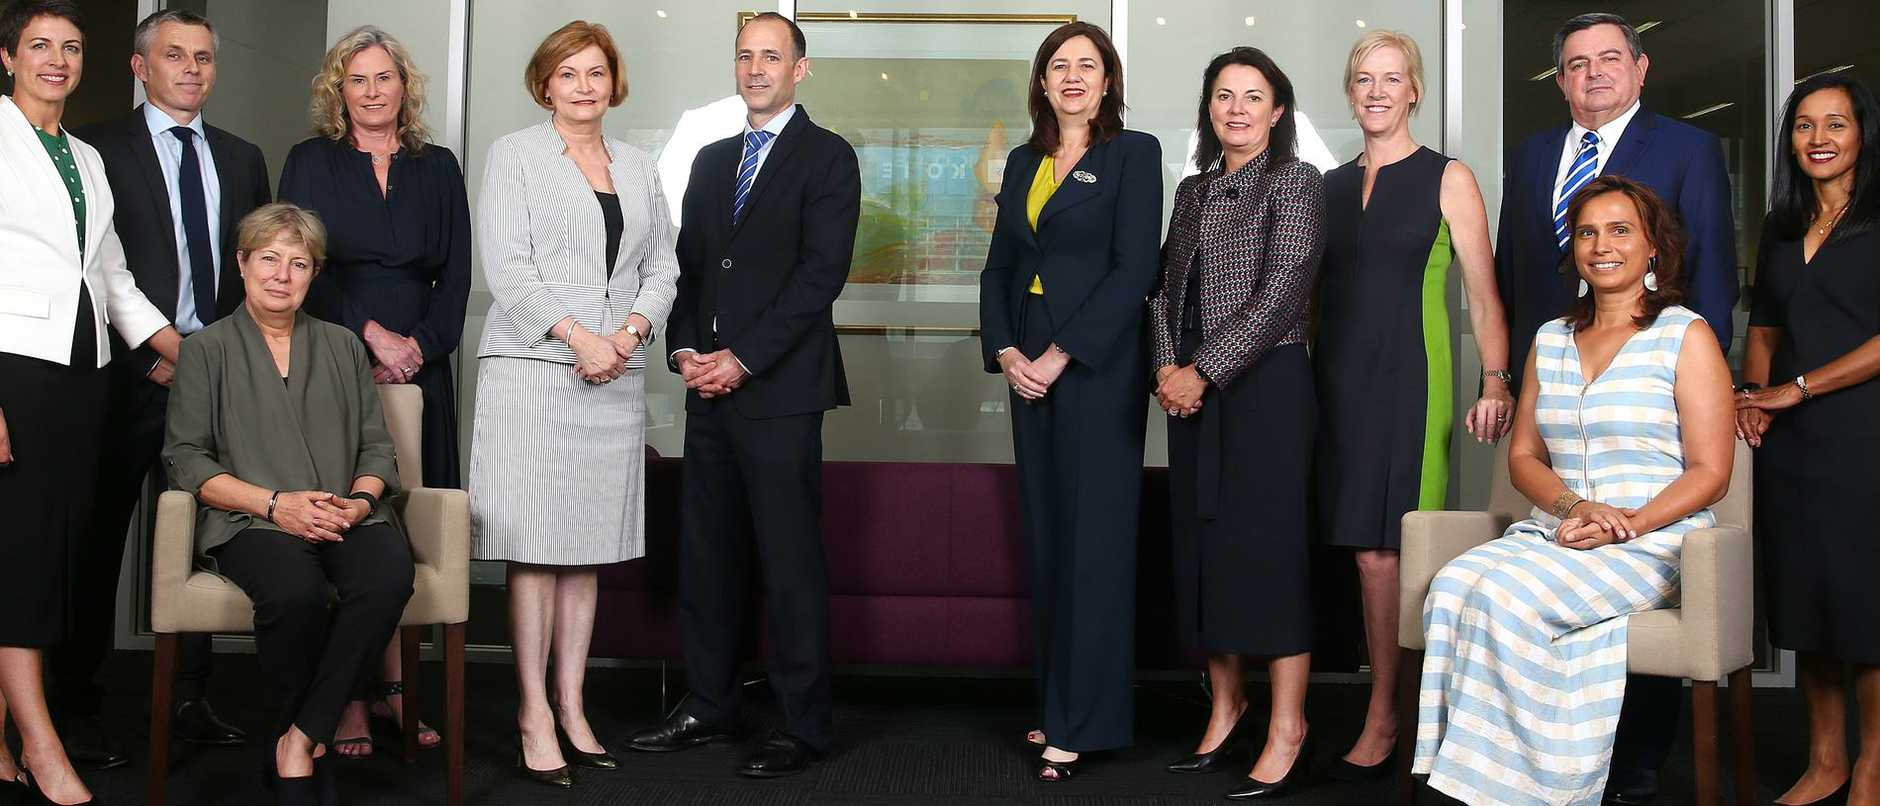 Business leaders are backing the 2032 Olympics bid after meeting with Premier Annastacia Palaszczuk (centre).